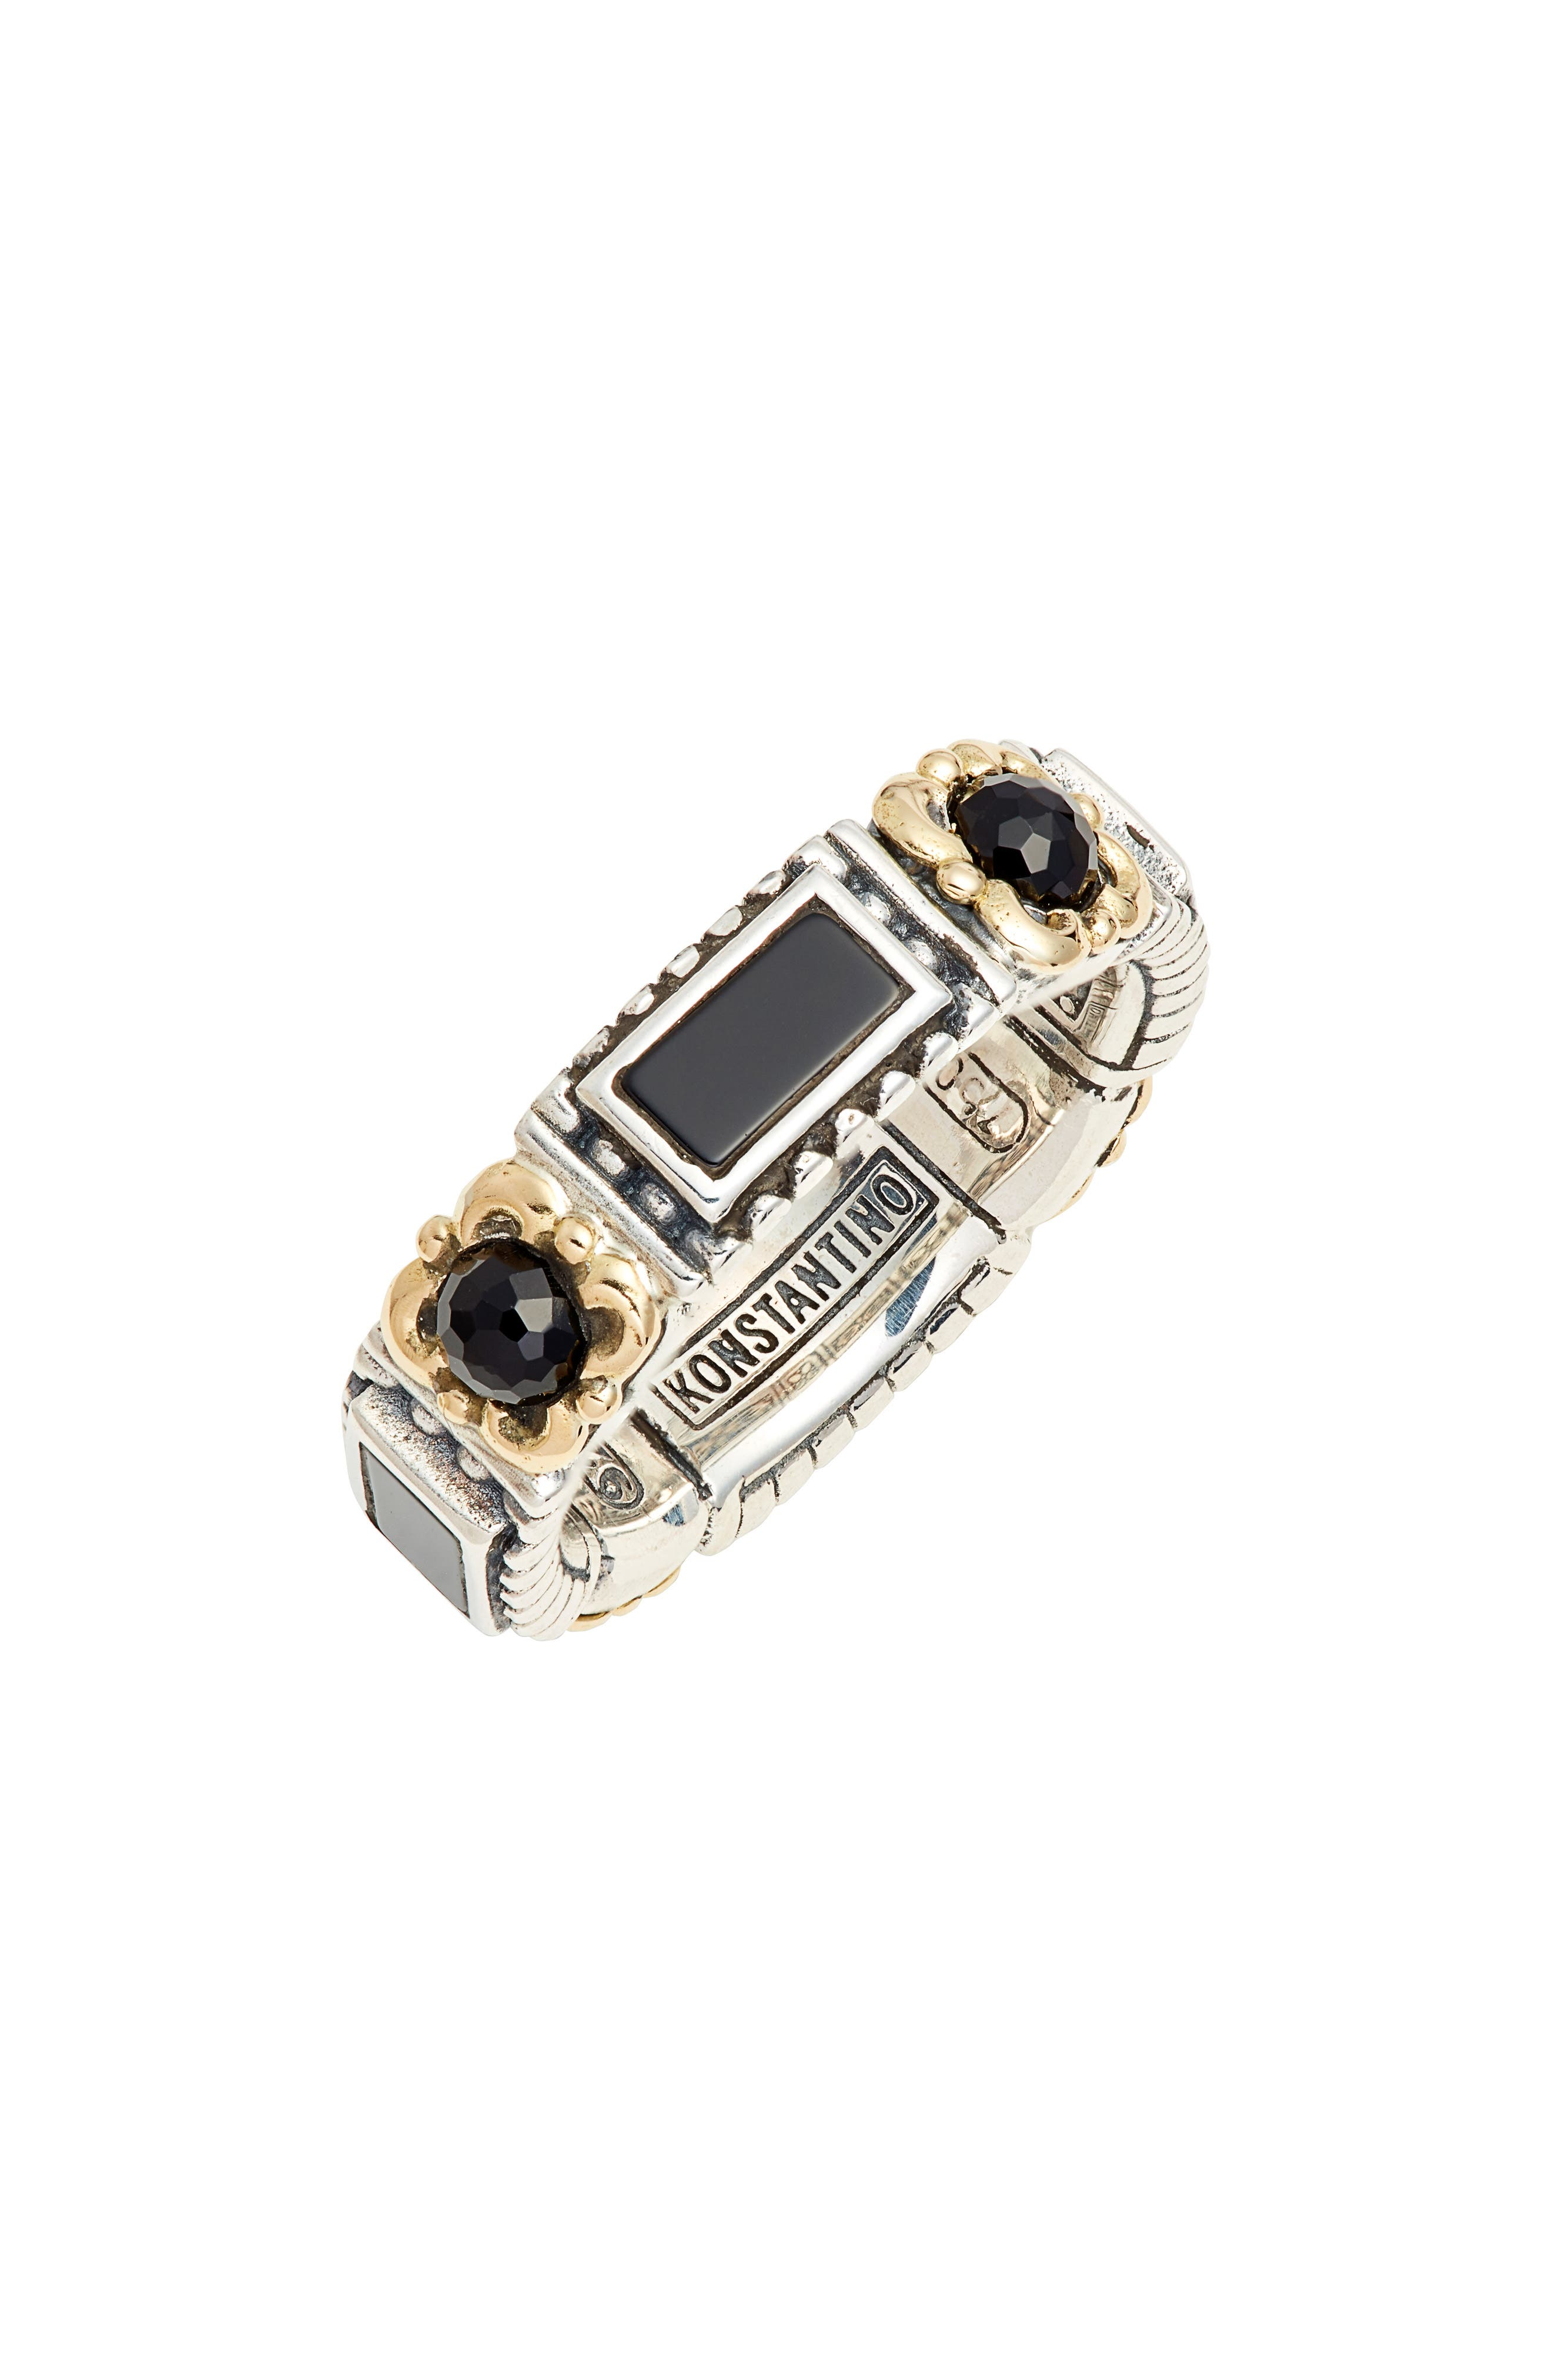 A band ring inspired by the history of ancient Greece features an ornate design handcrafted from 18-karat gold filigree, onyx and sterling silver. Style Name: Konstantino Calypso Band Ring. Style Number: 5850520. Available in stores.